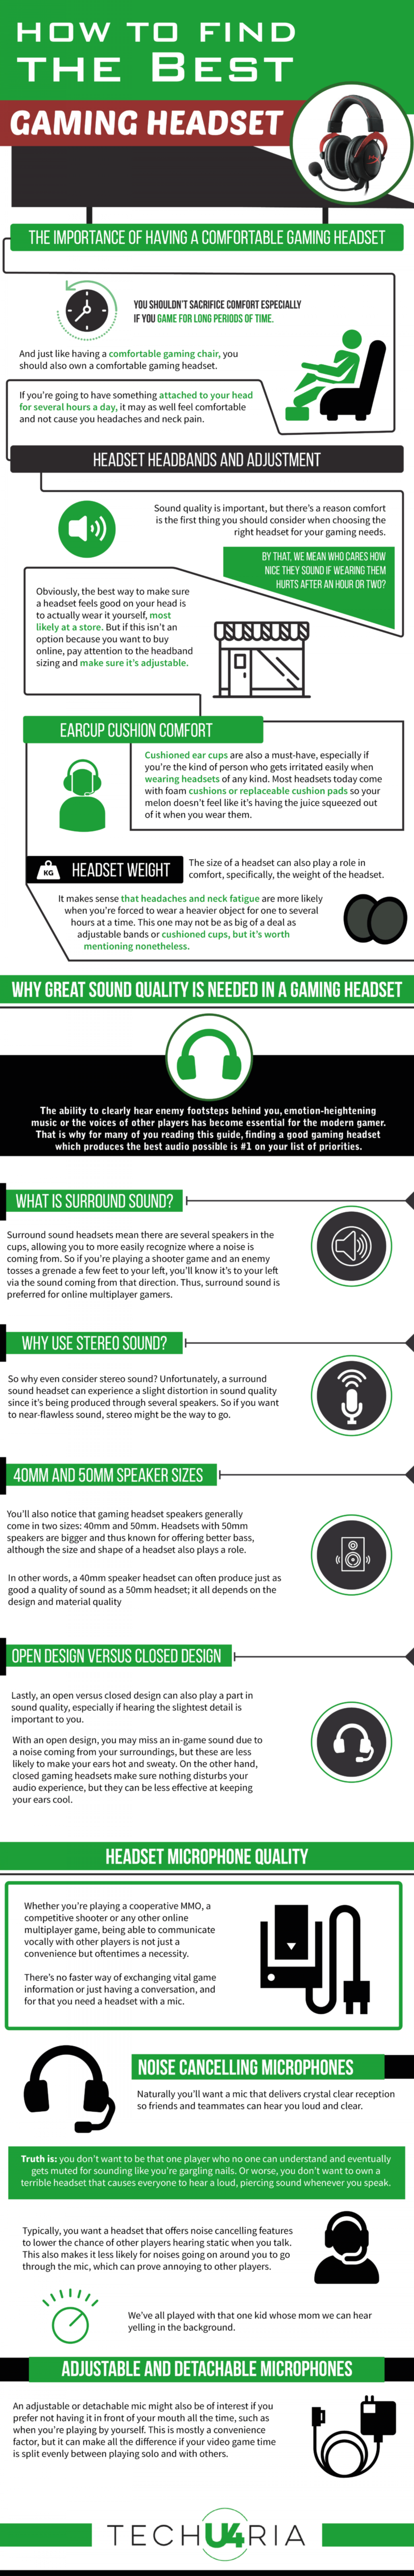 How To Find The Best Gaming Headset Infographic